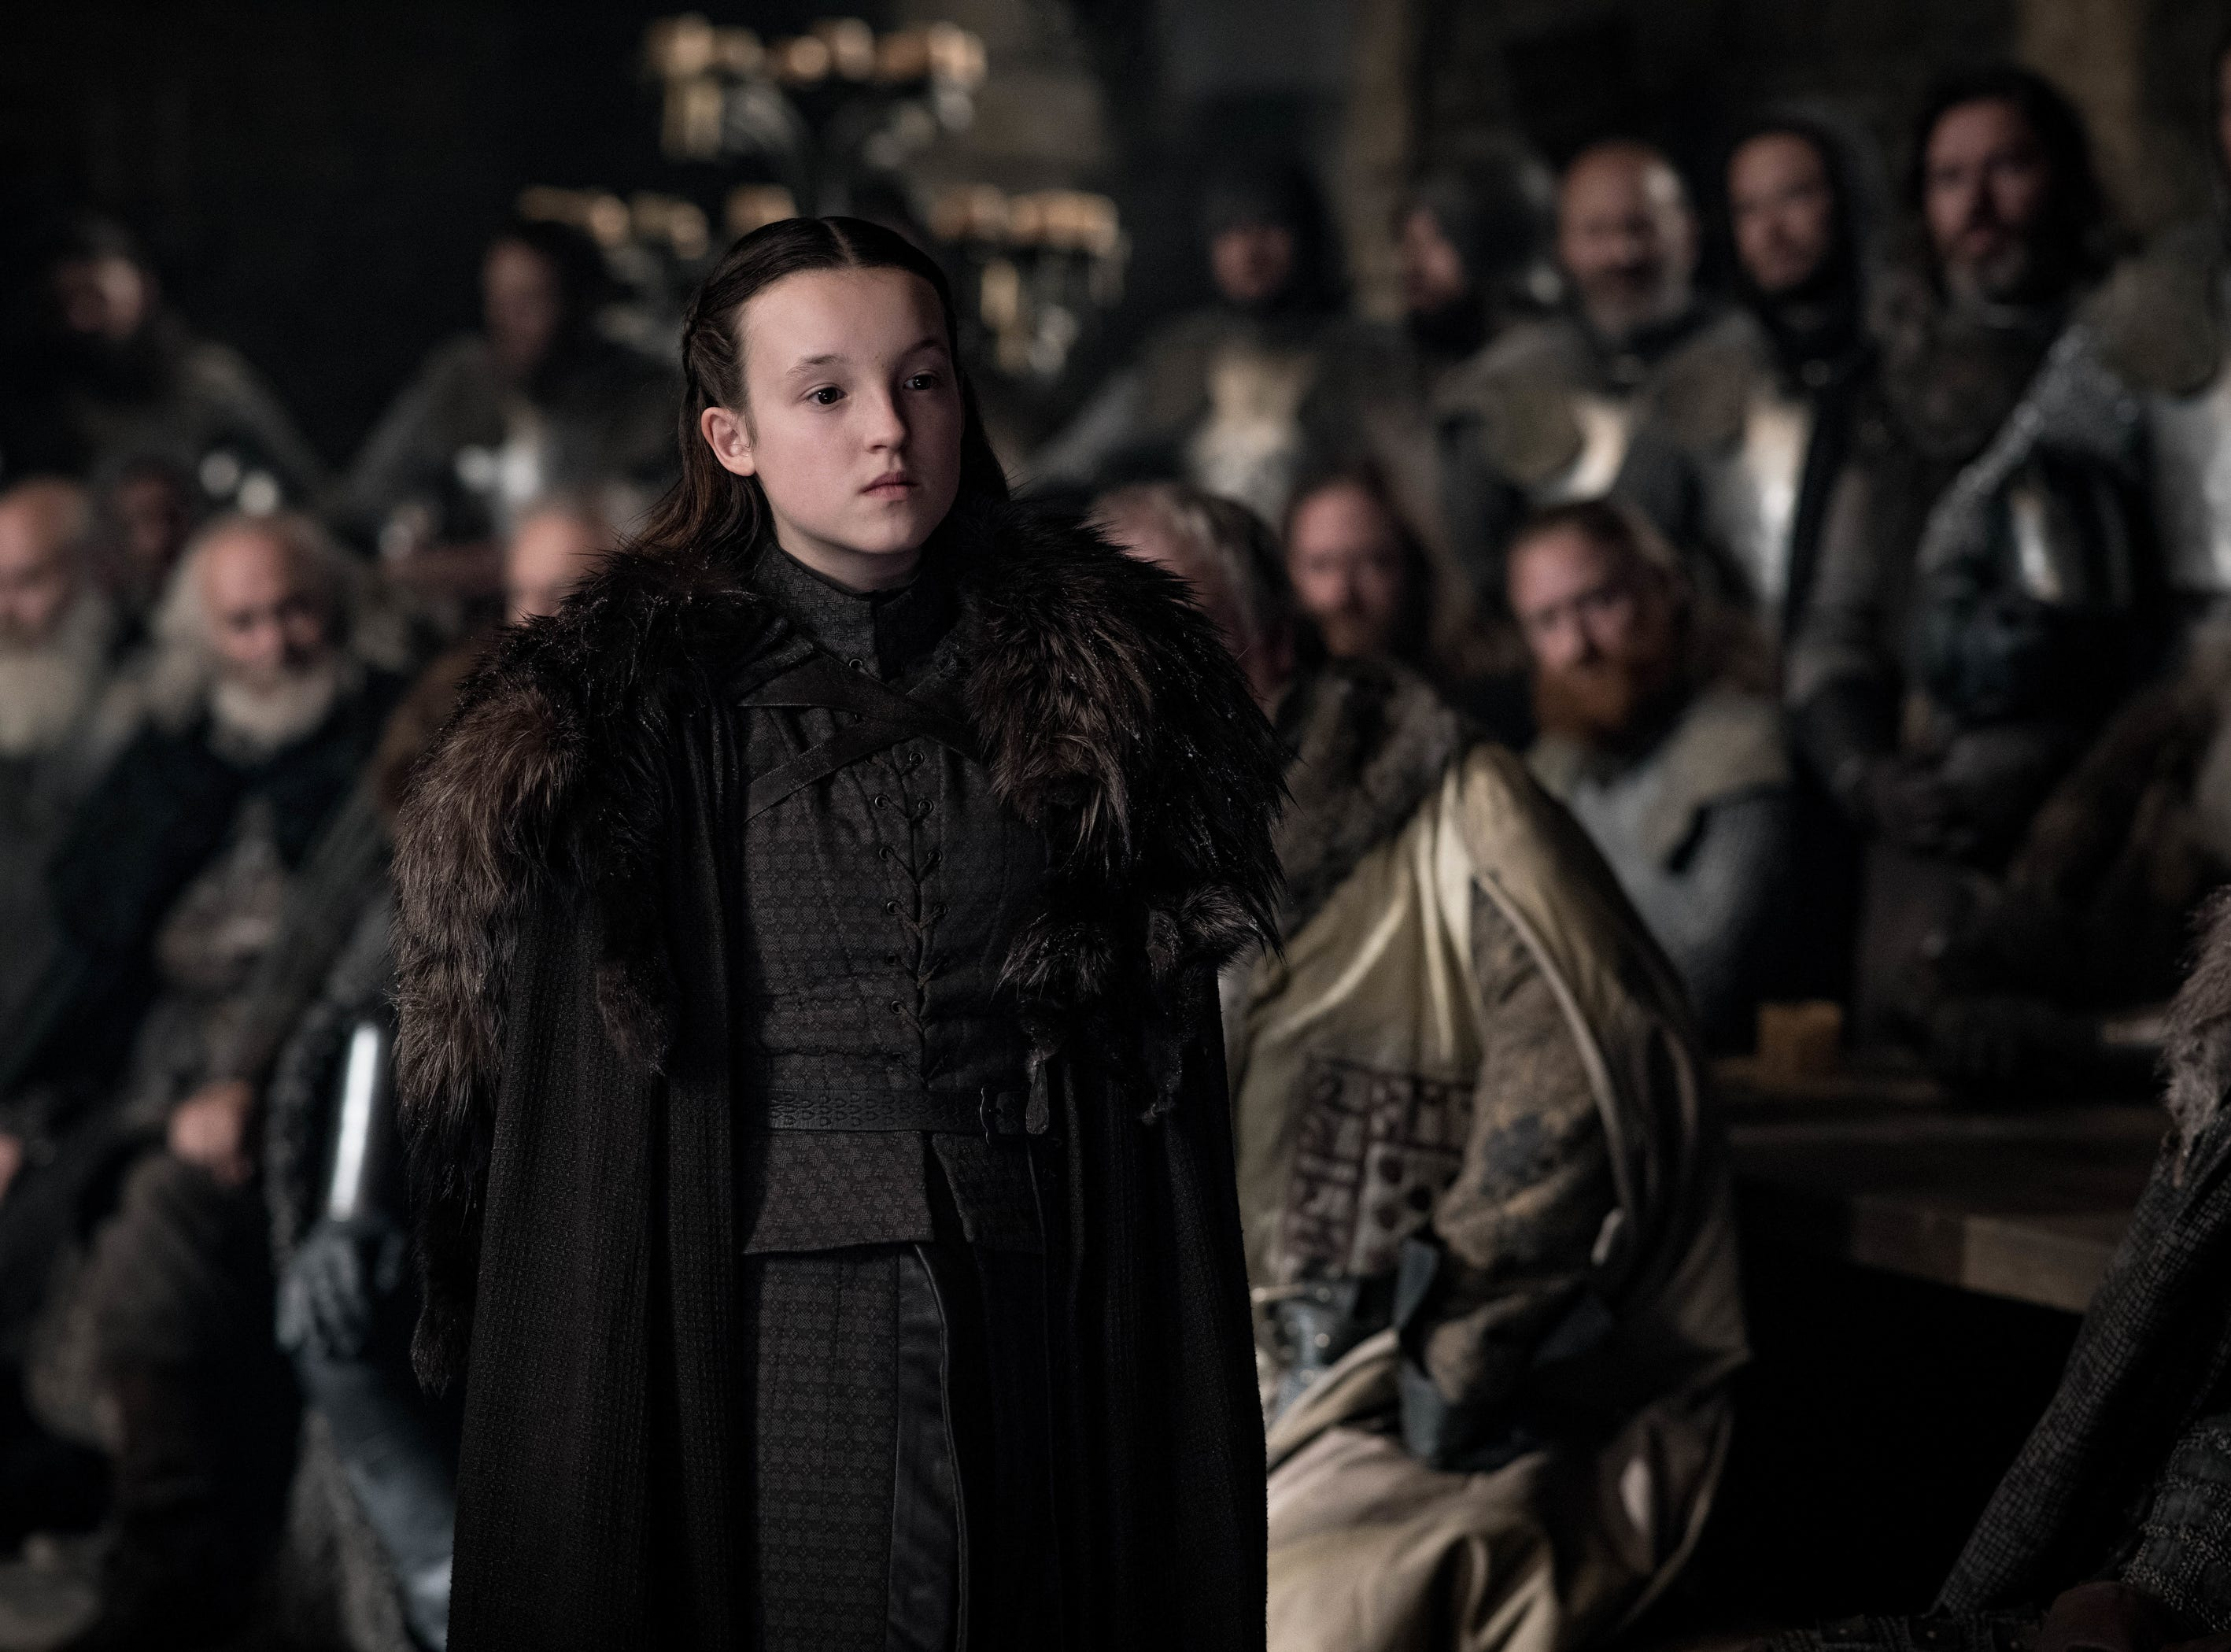 Lyanna Mormont (Bella Ramsey) raises objections during a meeting at Winterfell.